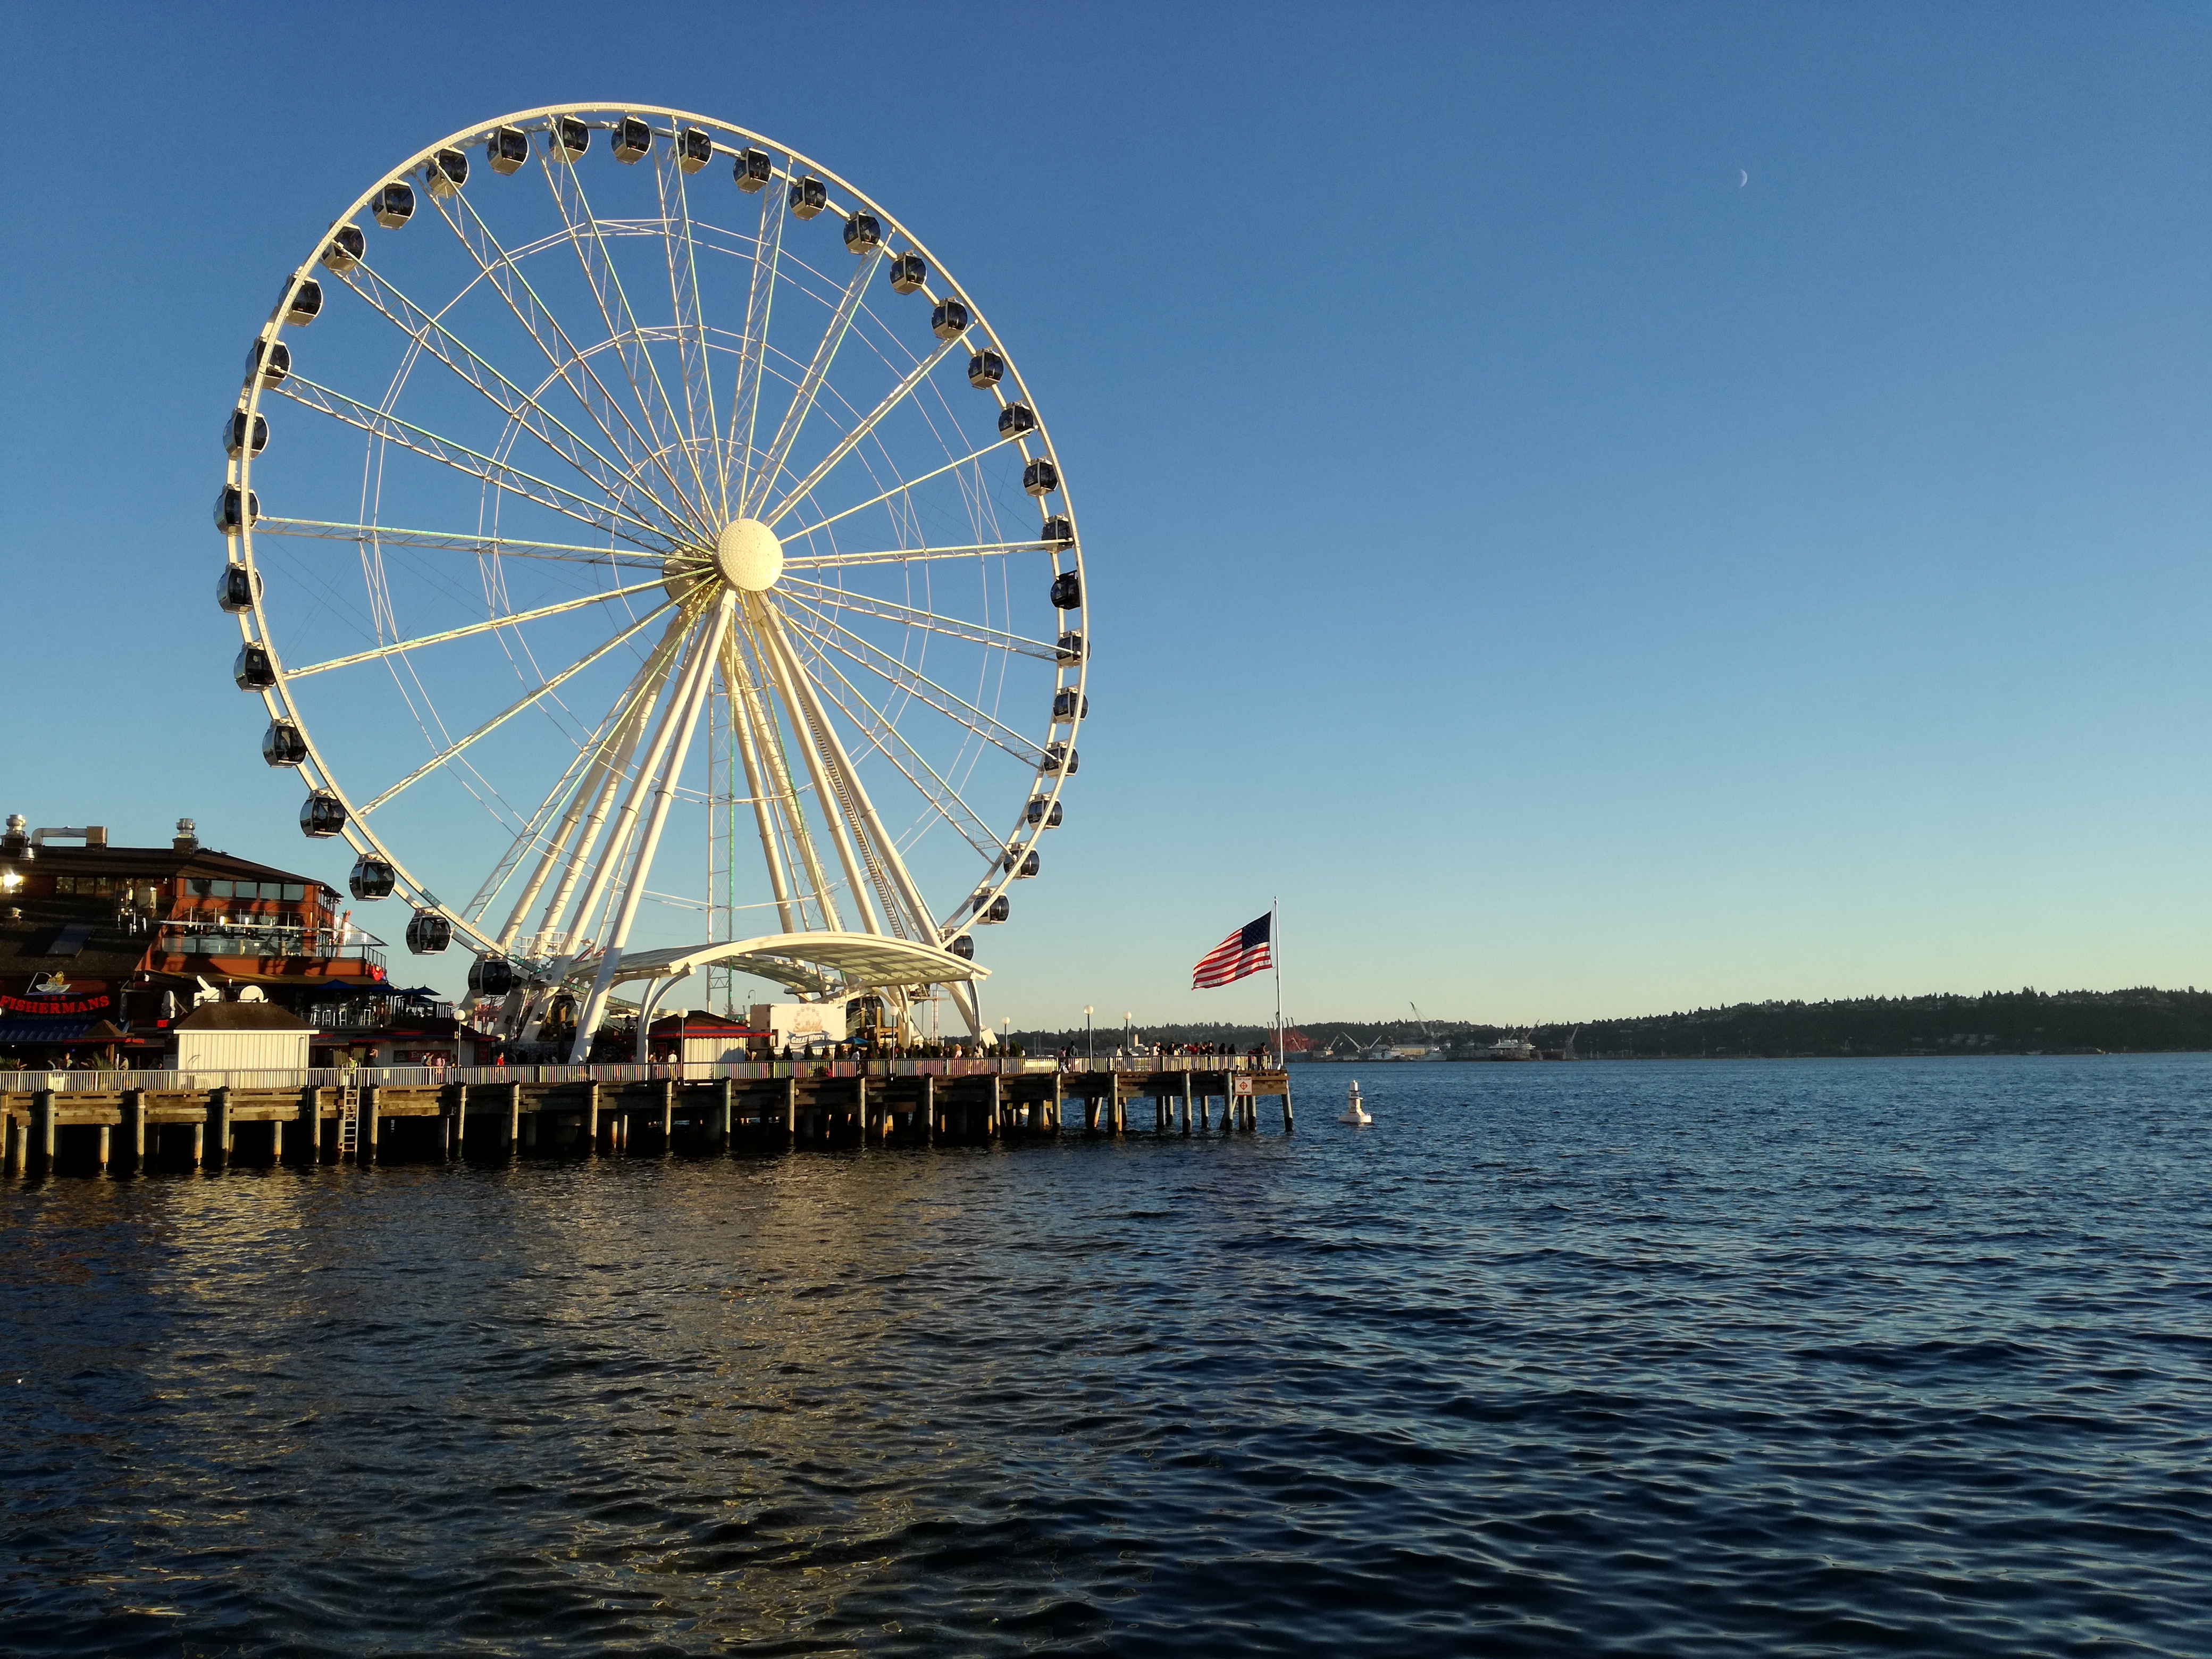 The Seattle pier